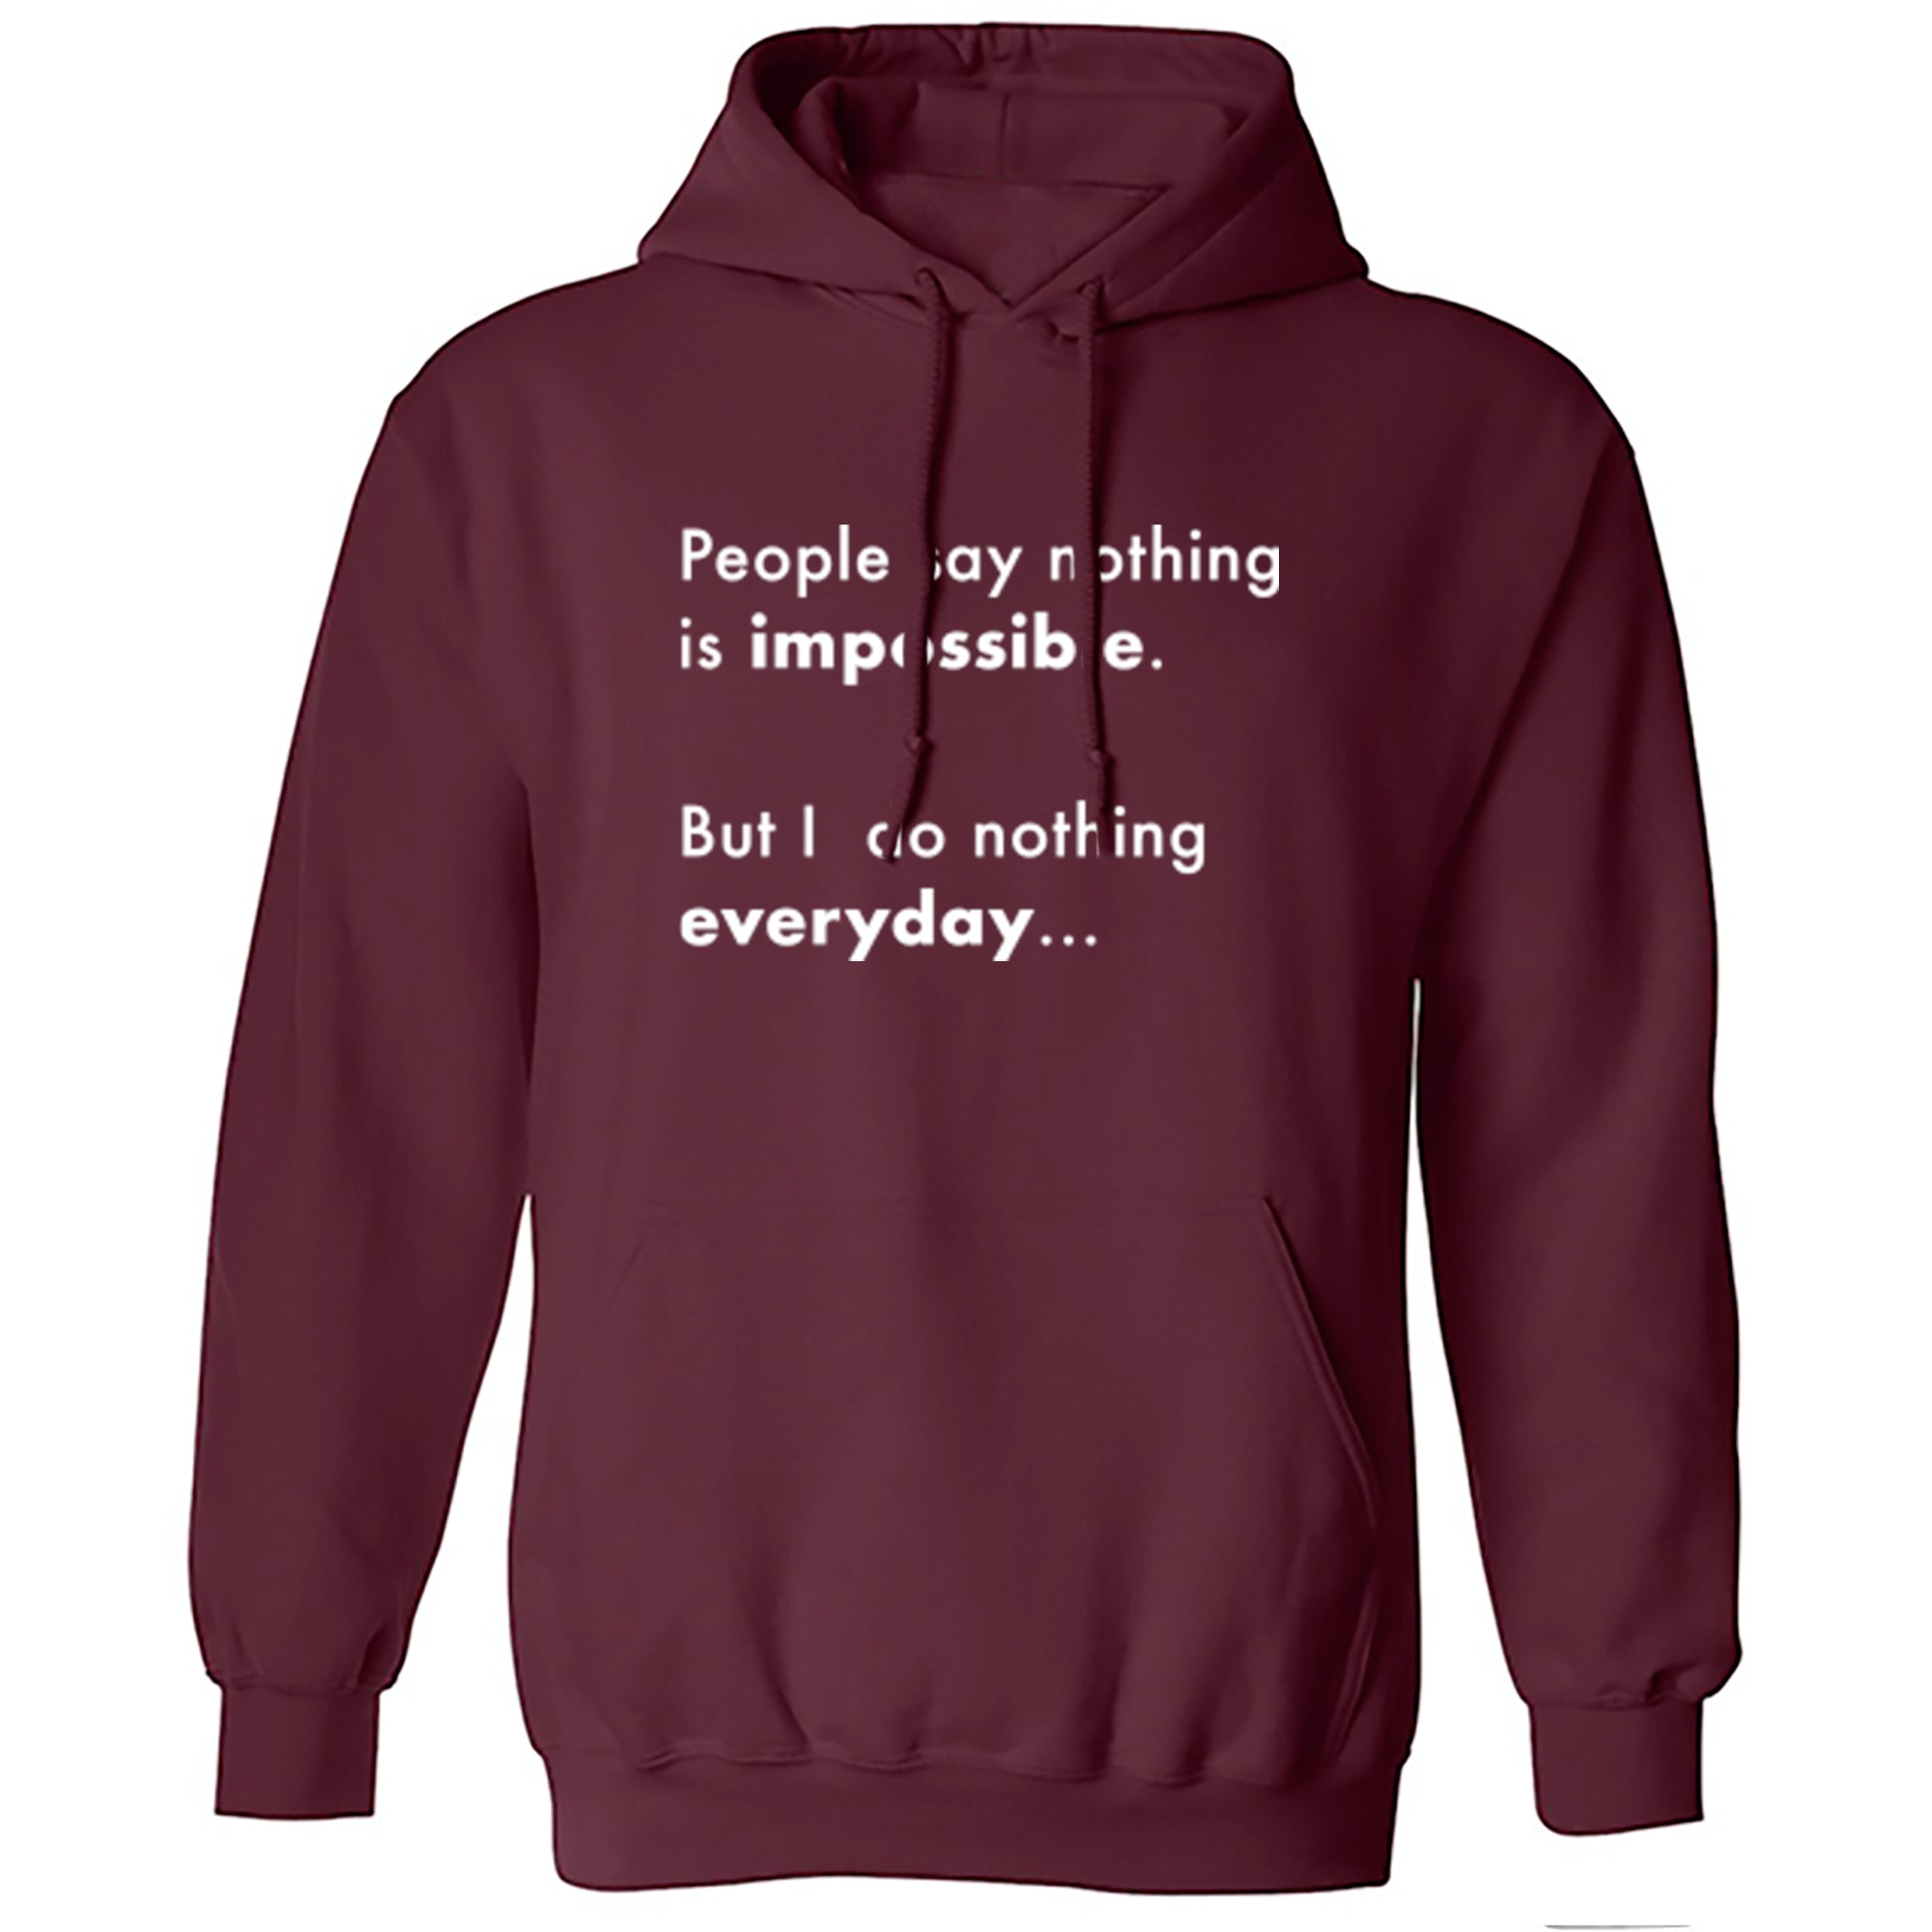 People Say Nothing Is Impossible, But I Do Nothing Everyday Unisex Hoodie A0071 - Illustrated Identity Ltd.